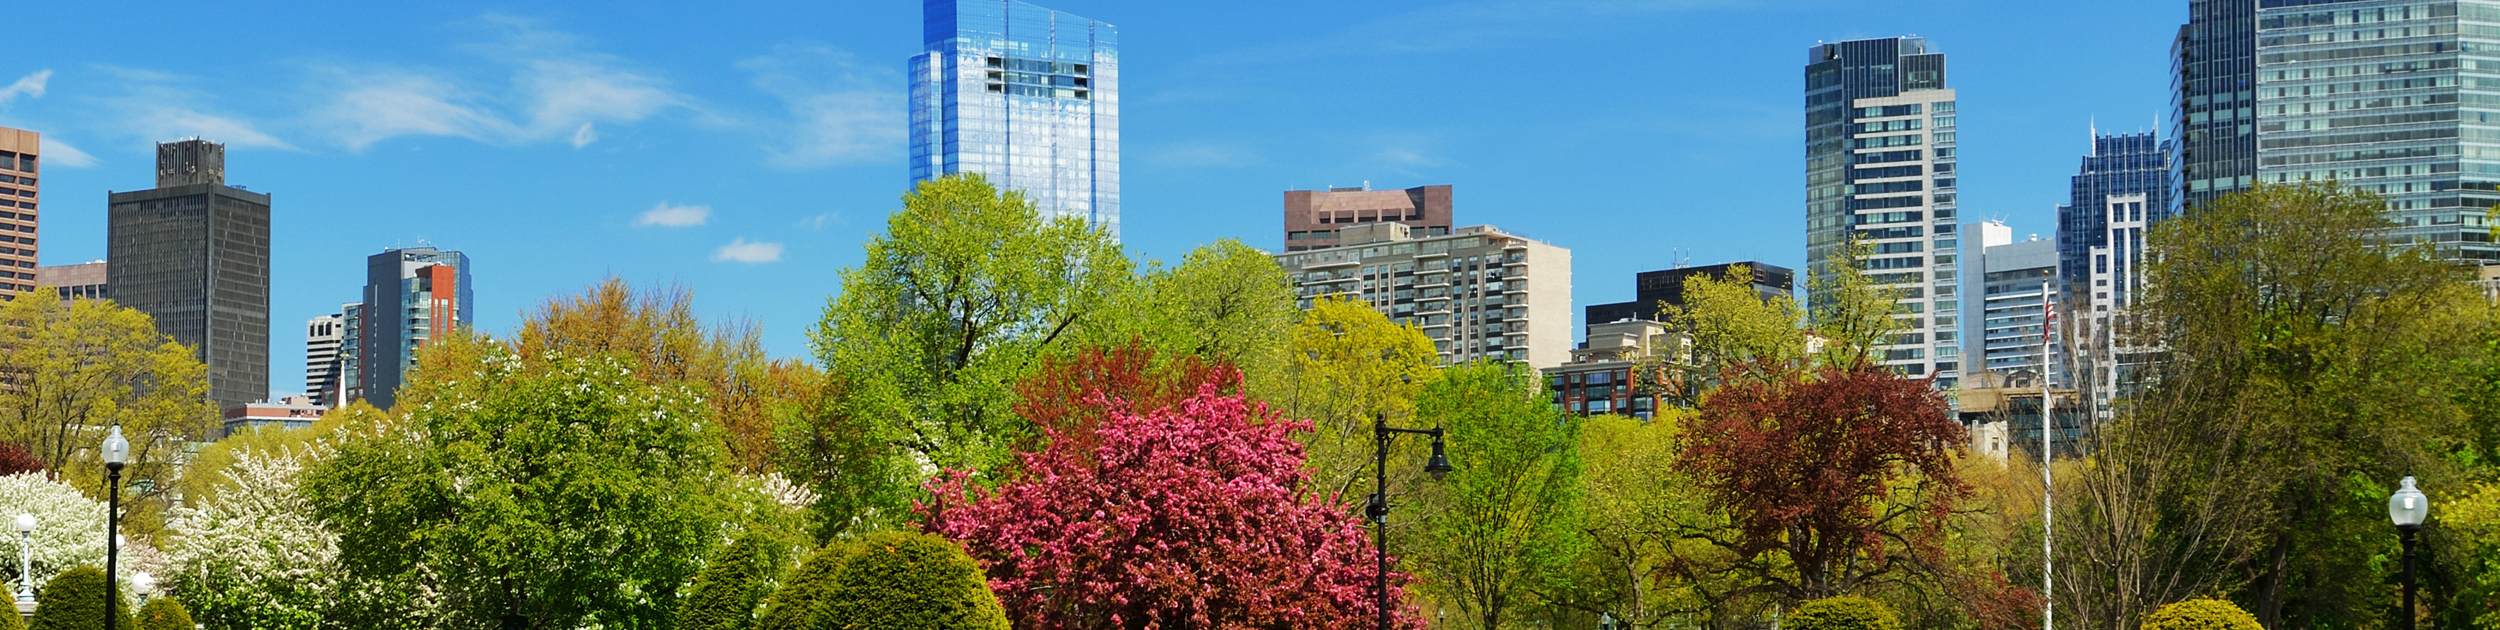 Boston skyline shown above beautiful Spring bushes